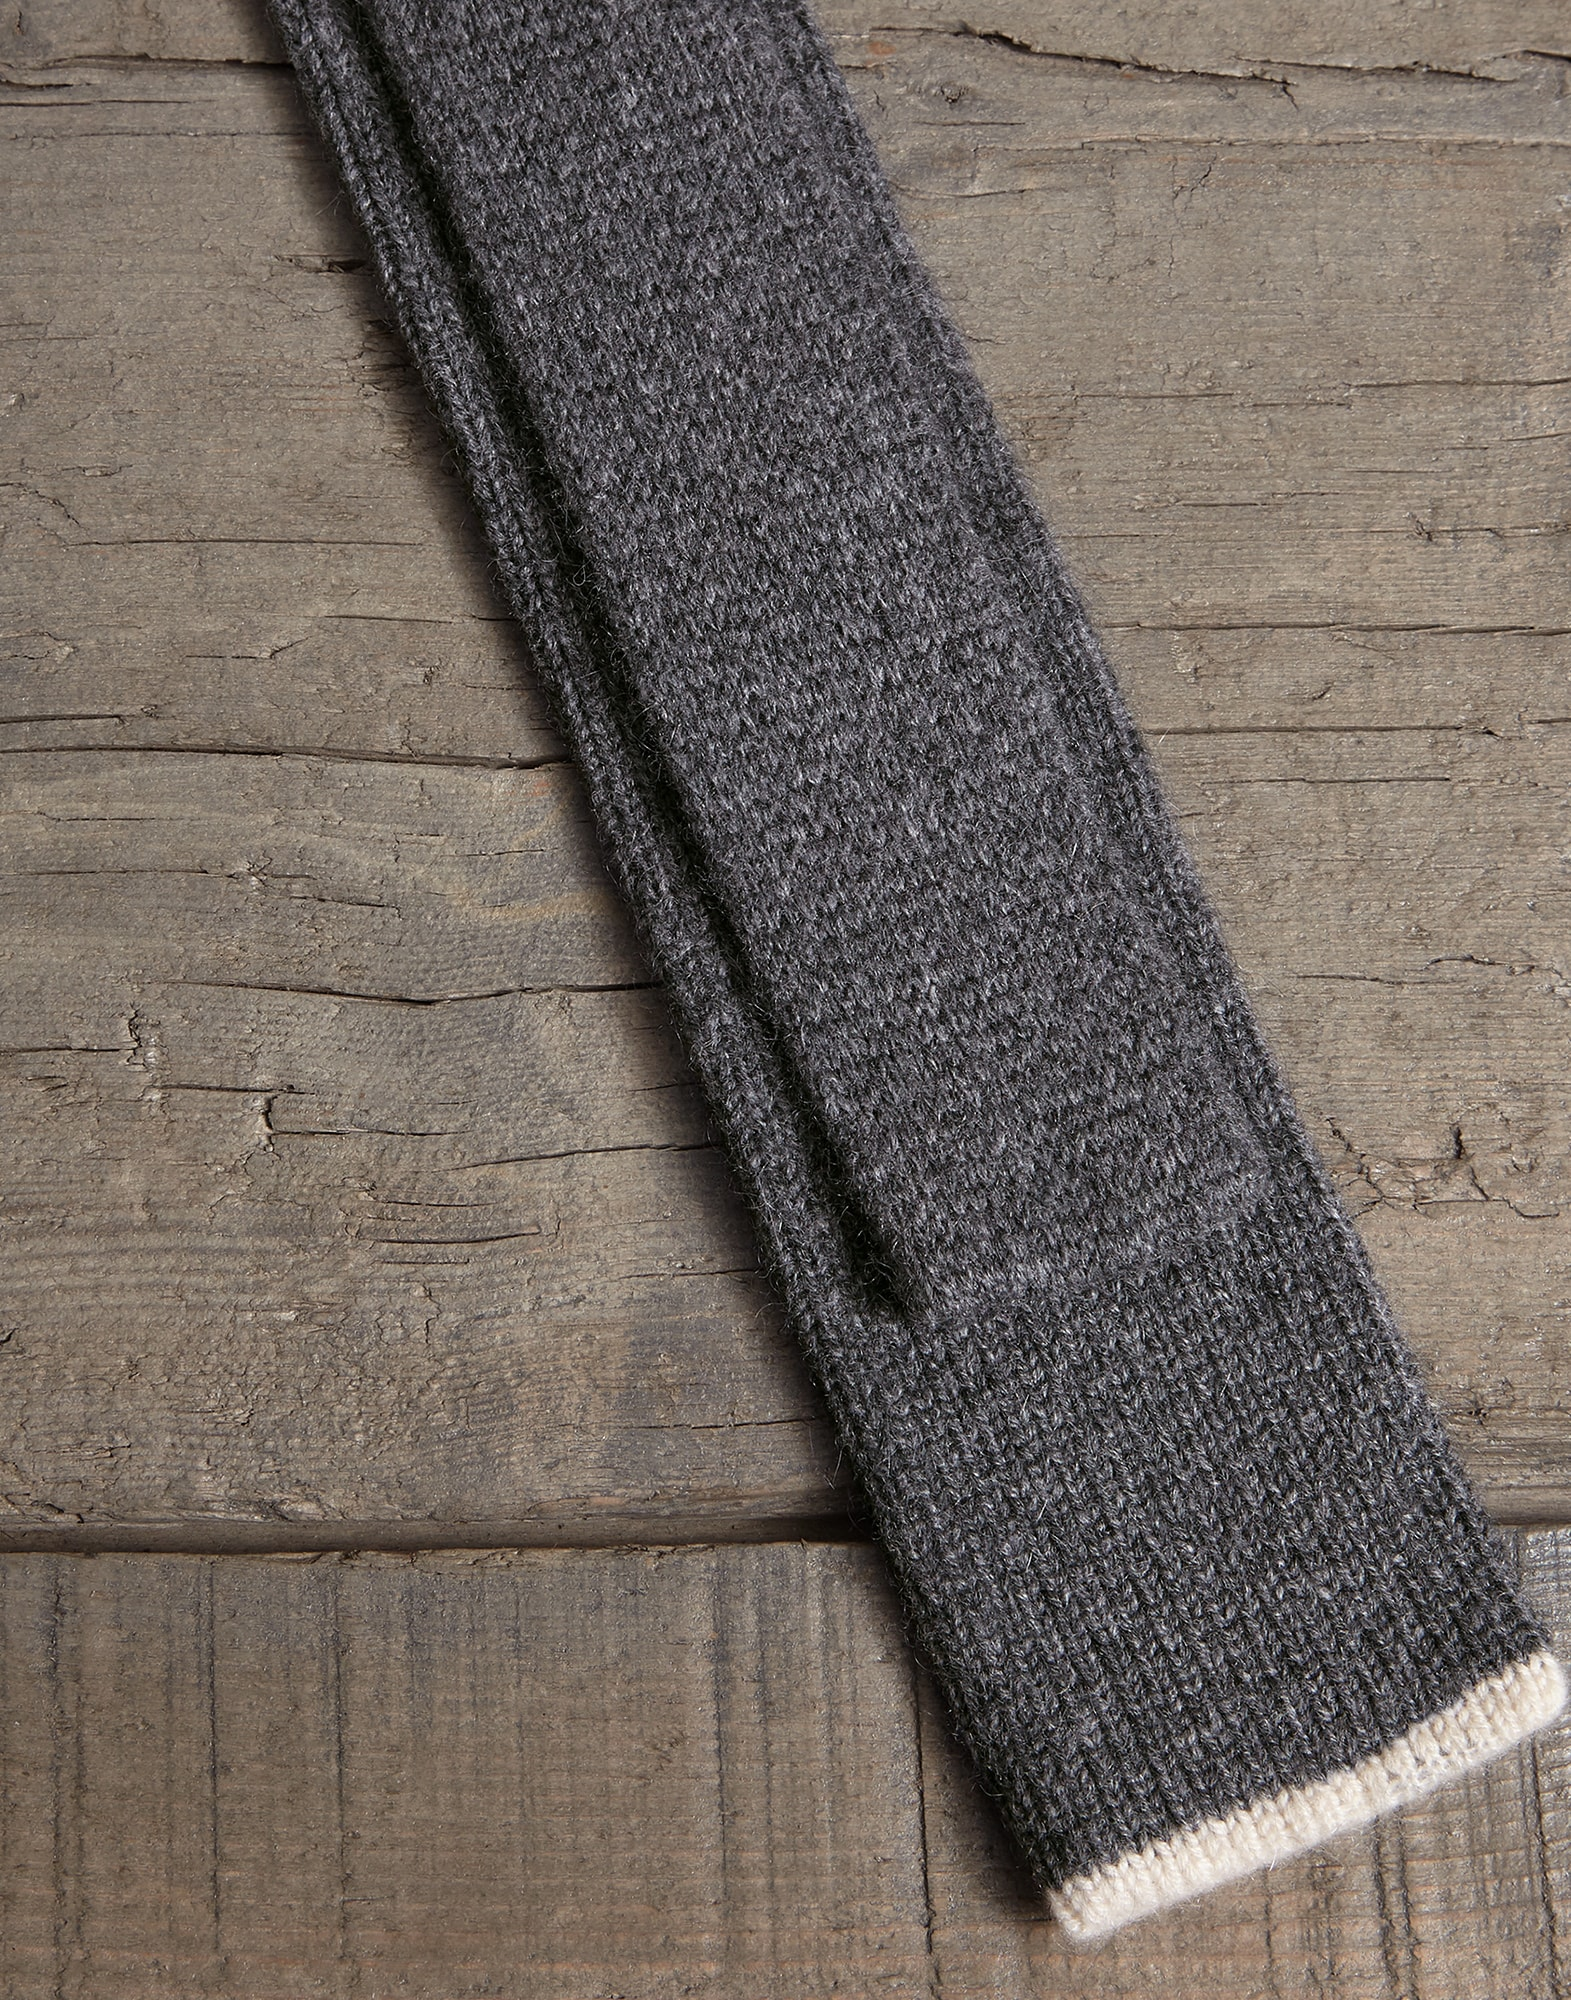 Tie Pebble Man 2 - Brunello Cucinelli